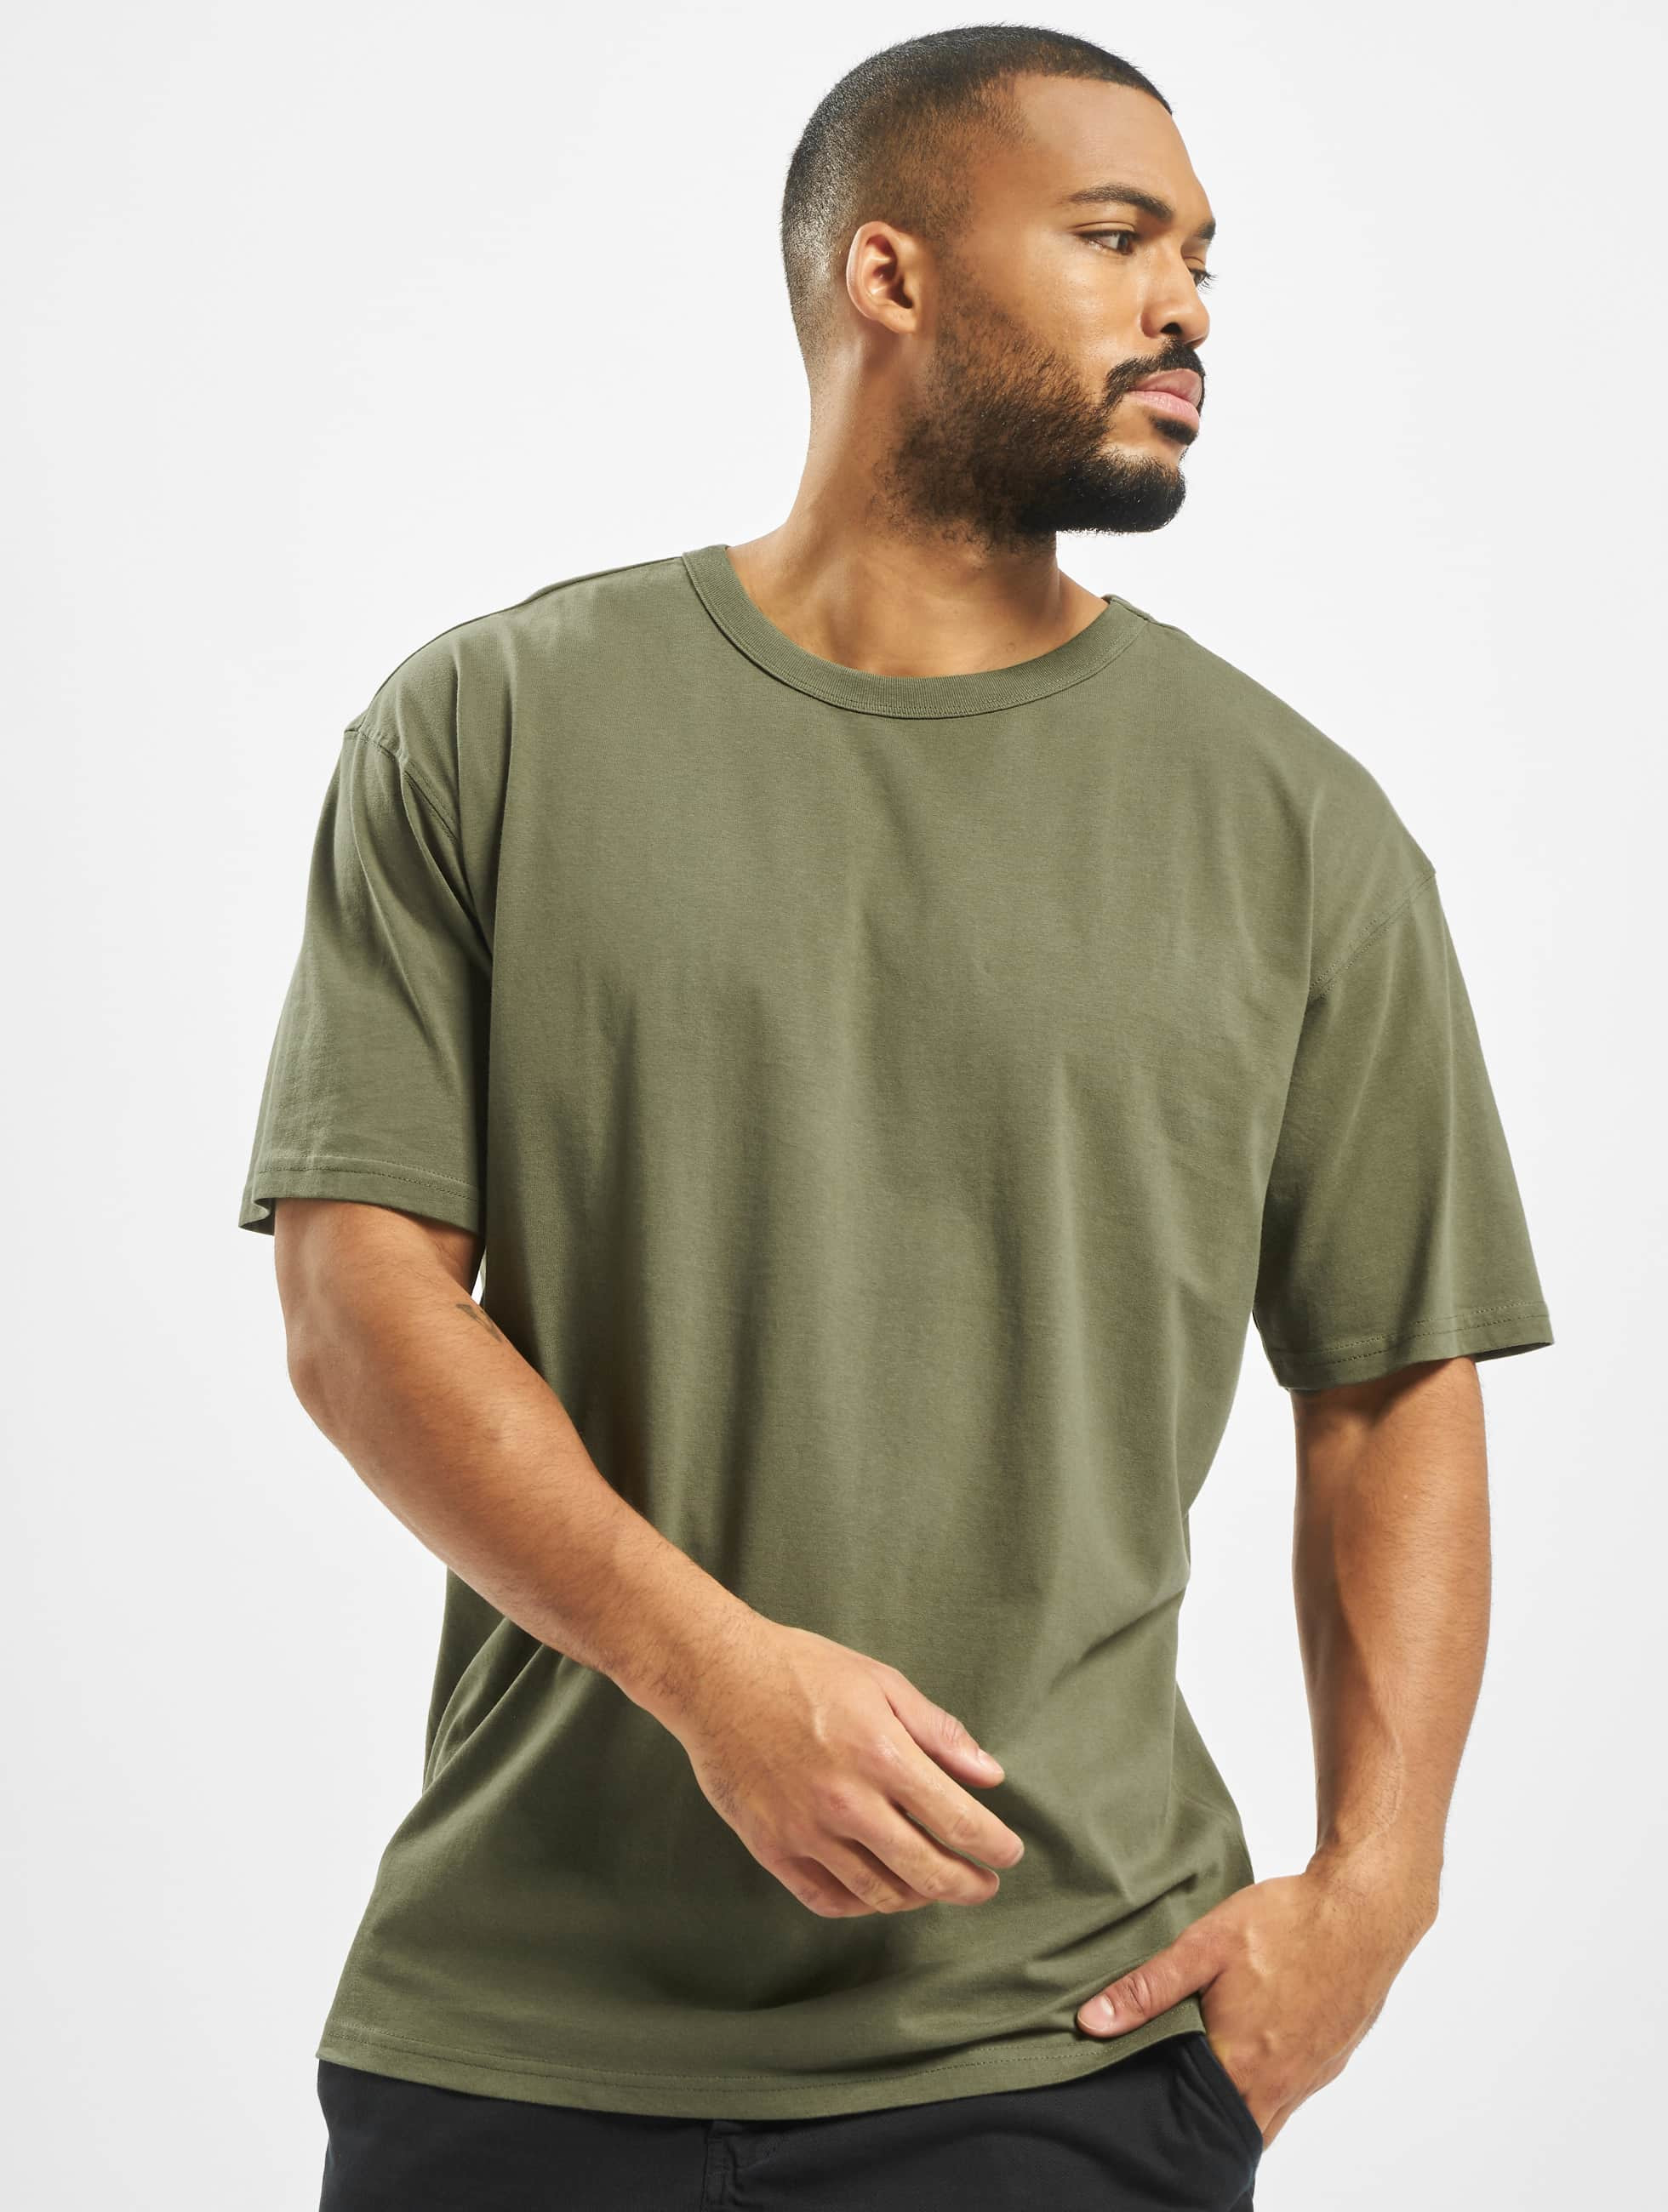 T-Shirt Oversized in olive